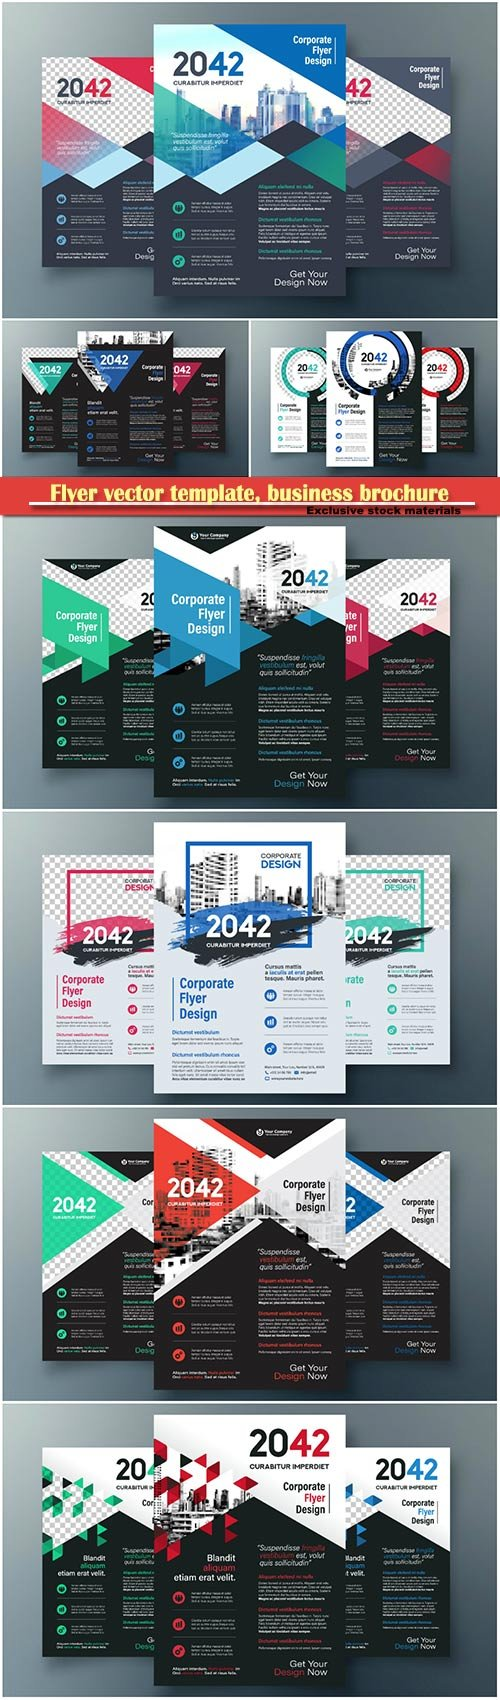 Flyer vector template, business brochure, magazine cover # 41